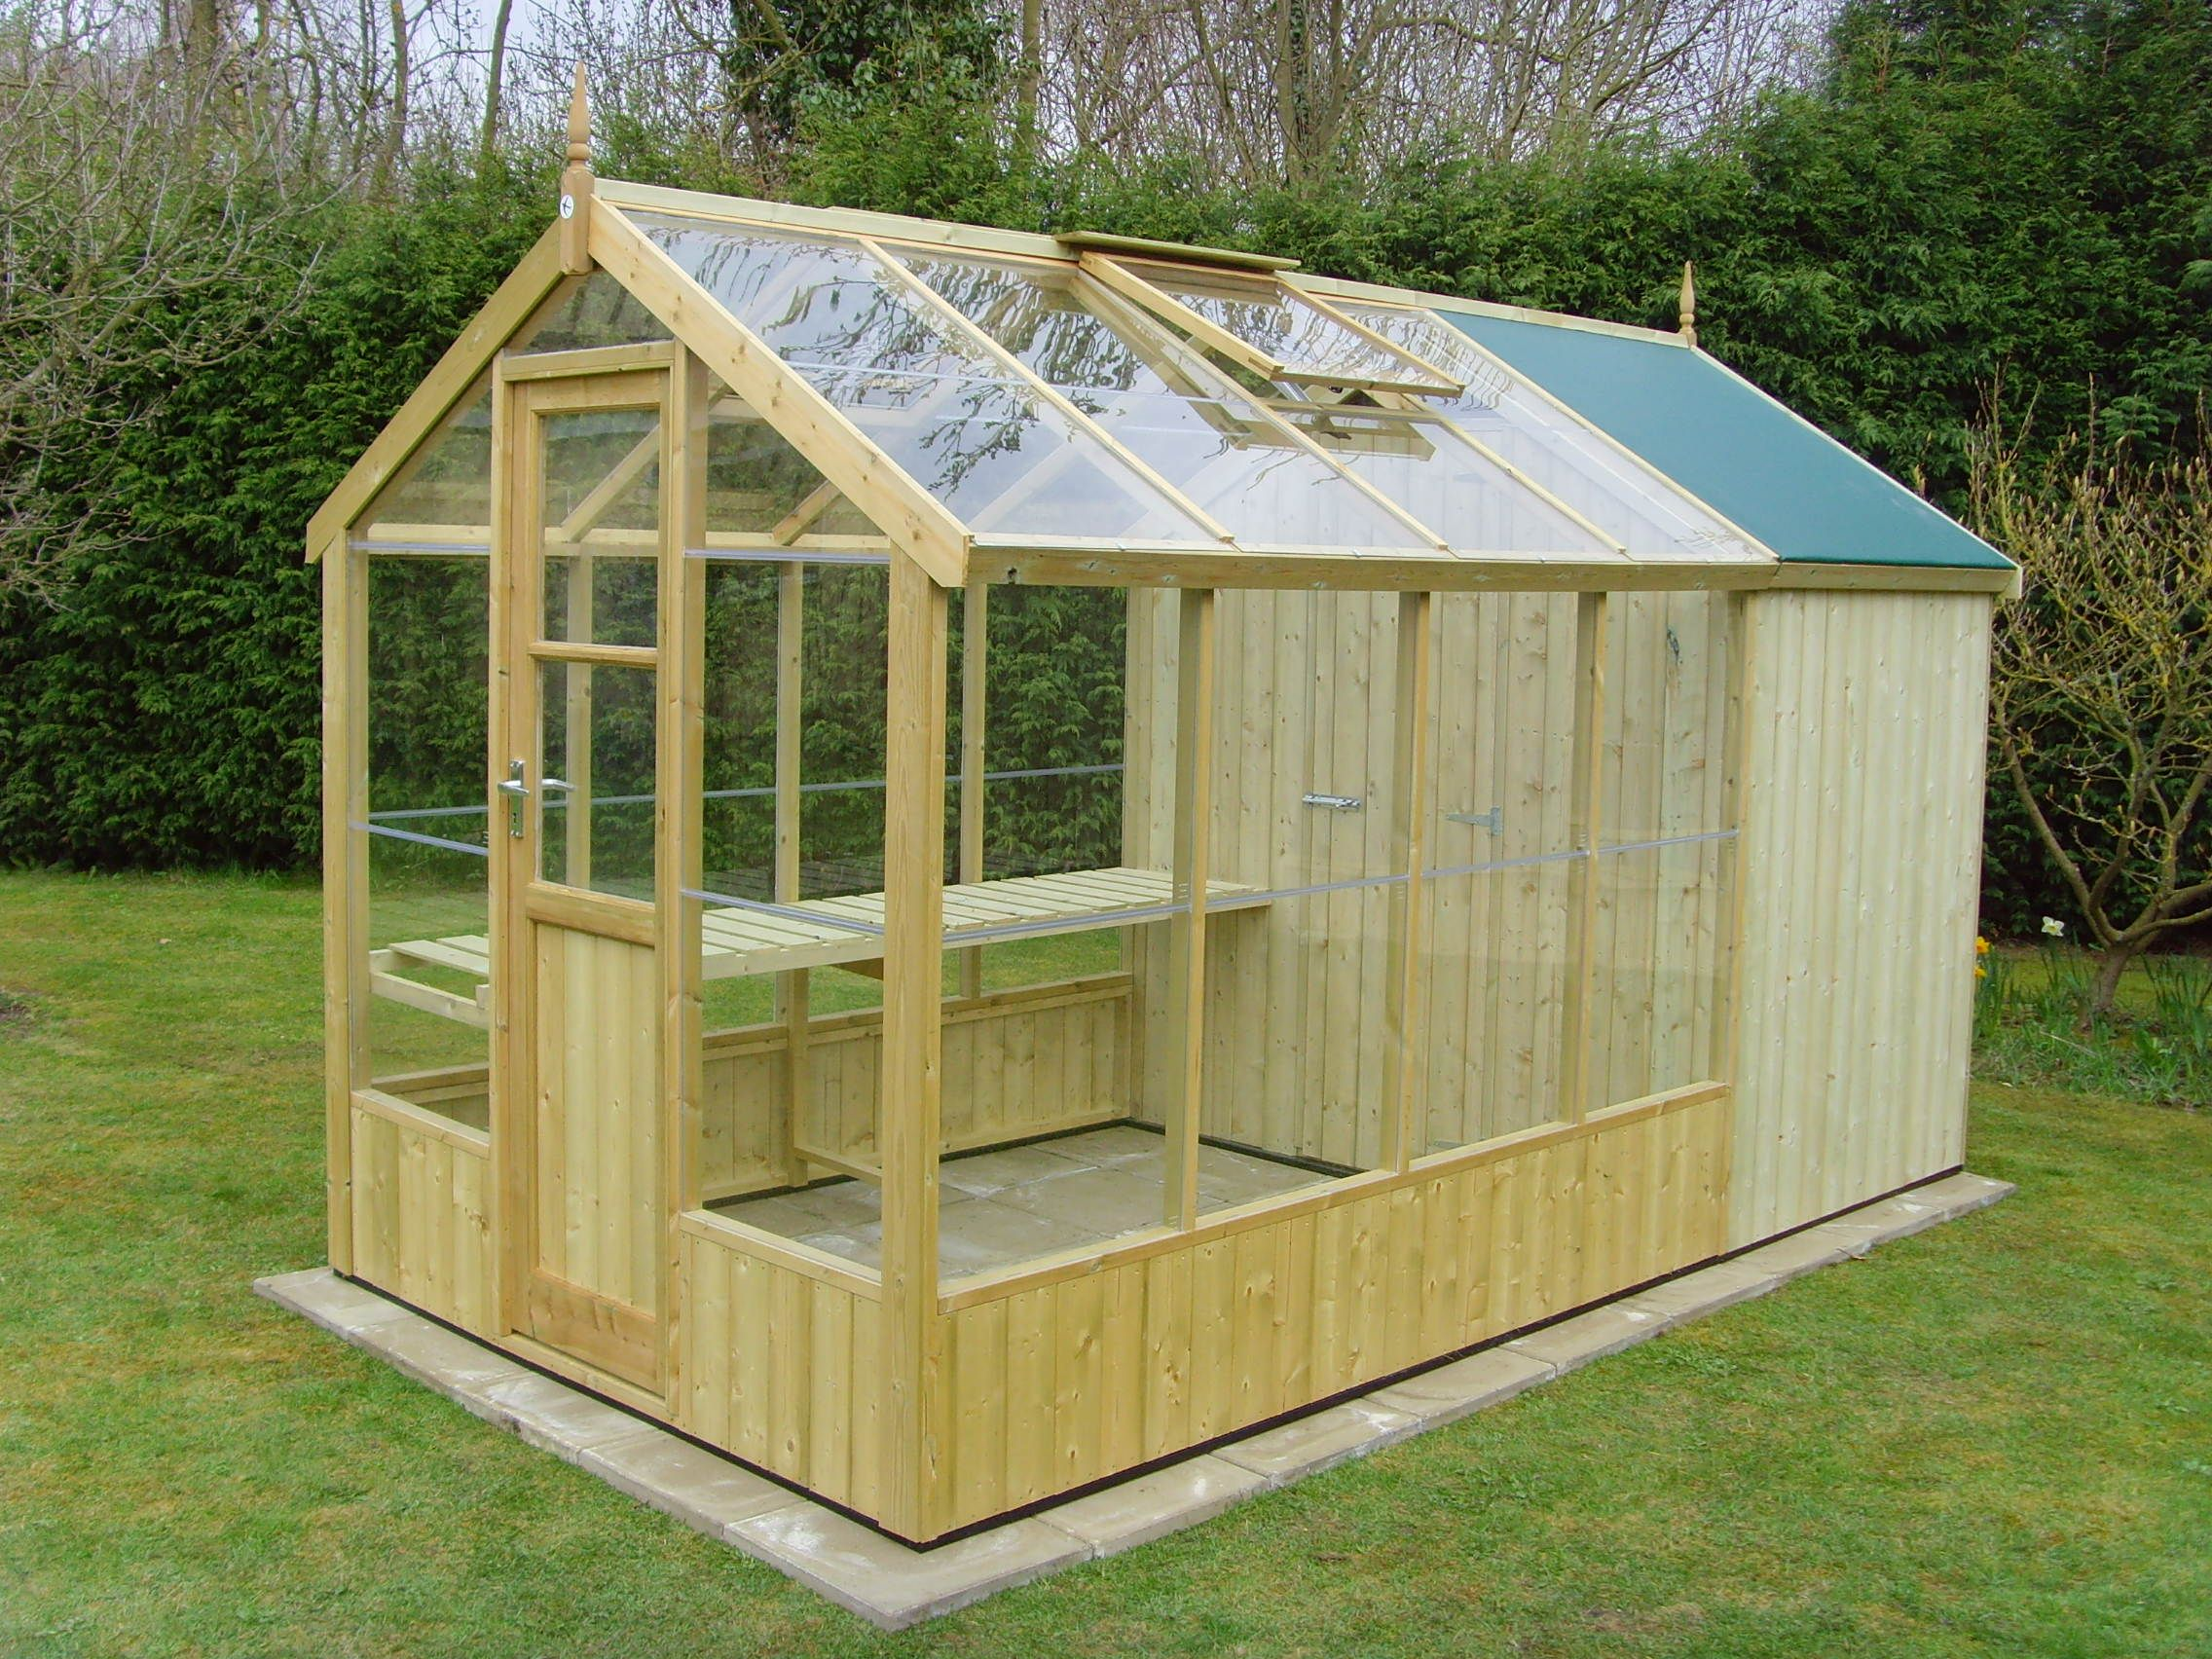 20 x 10 garden shed greenhouses in ohio must see desk work - Garden Sheds Ohio